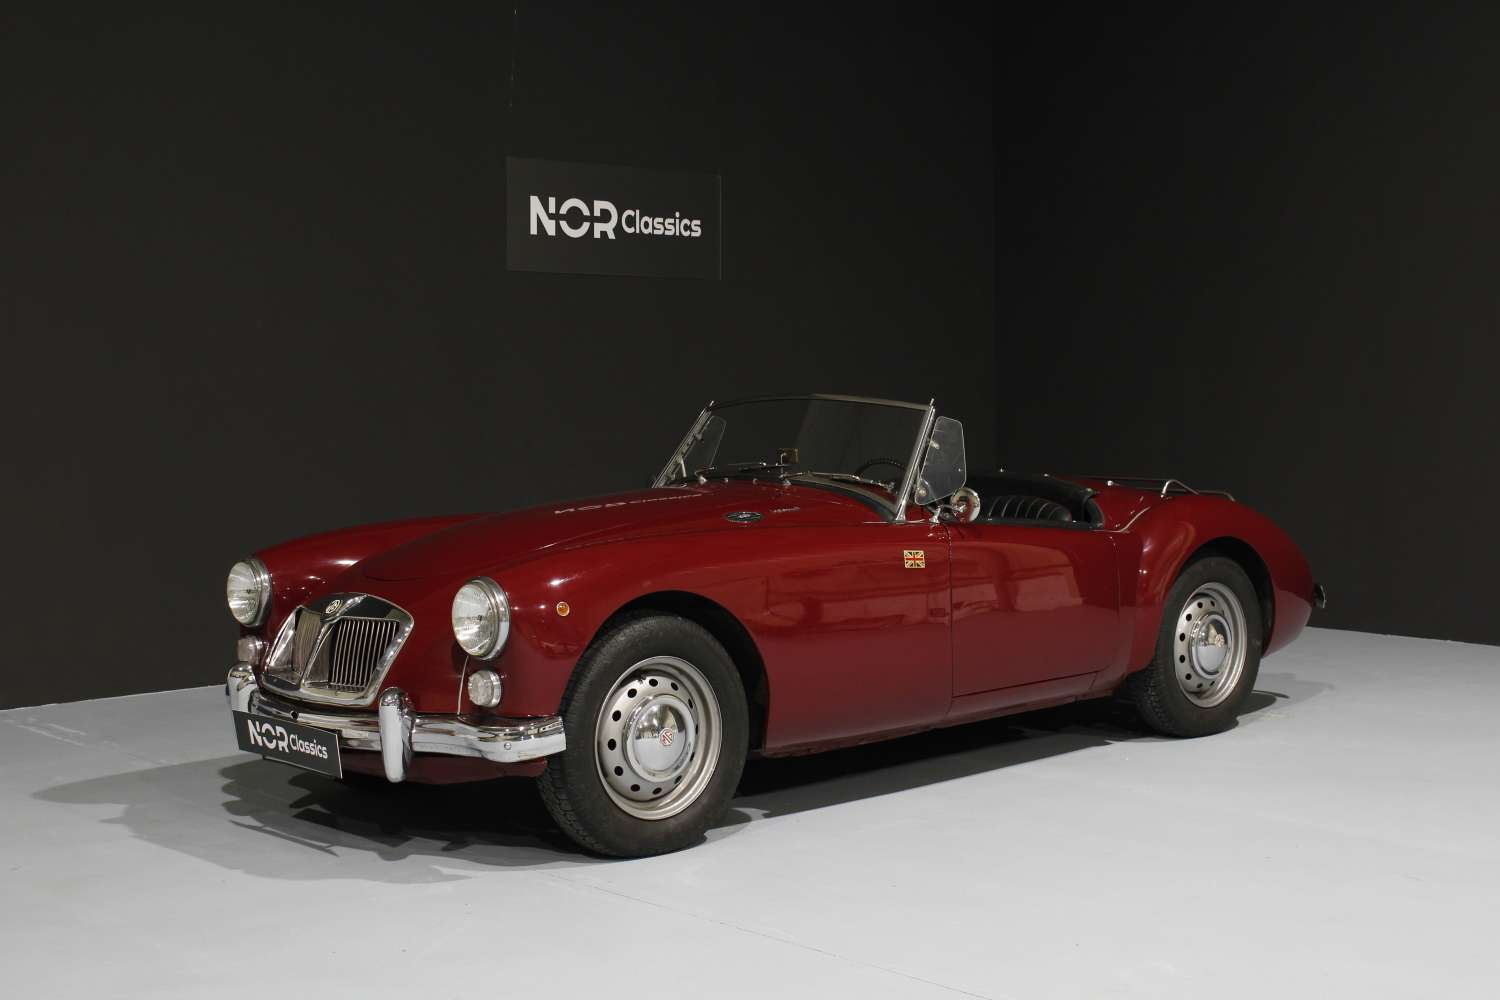 MG A 1600 Mark II 1962 Roadster